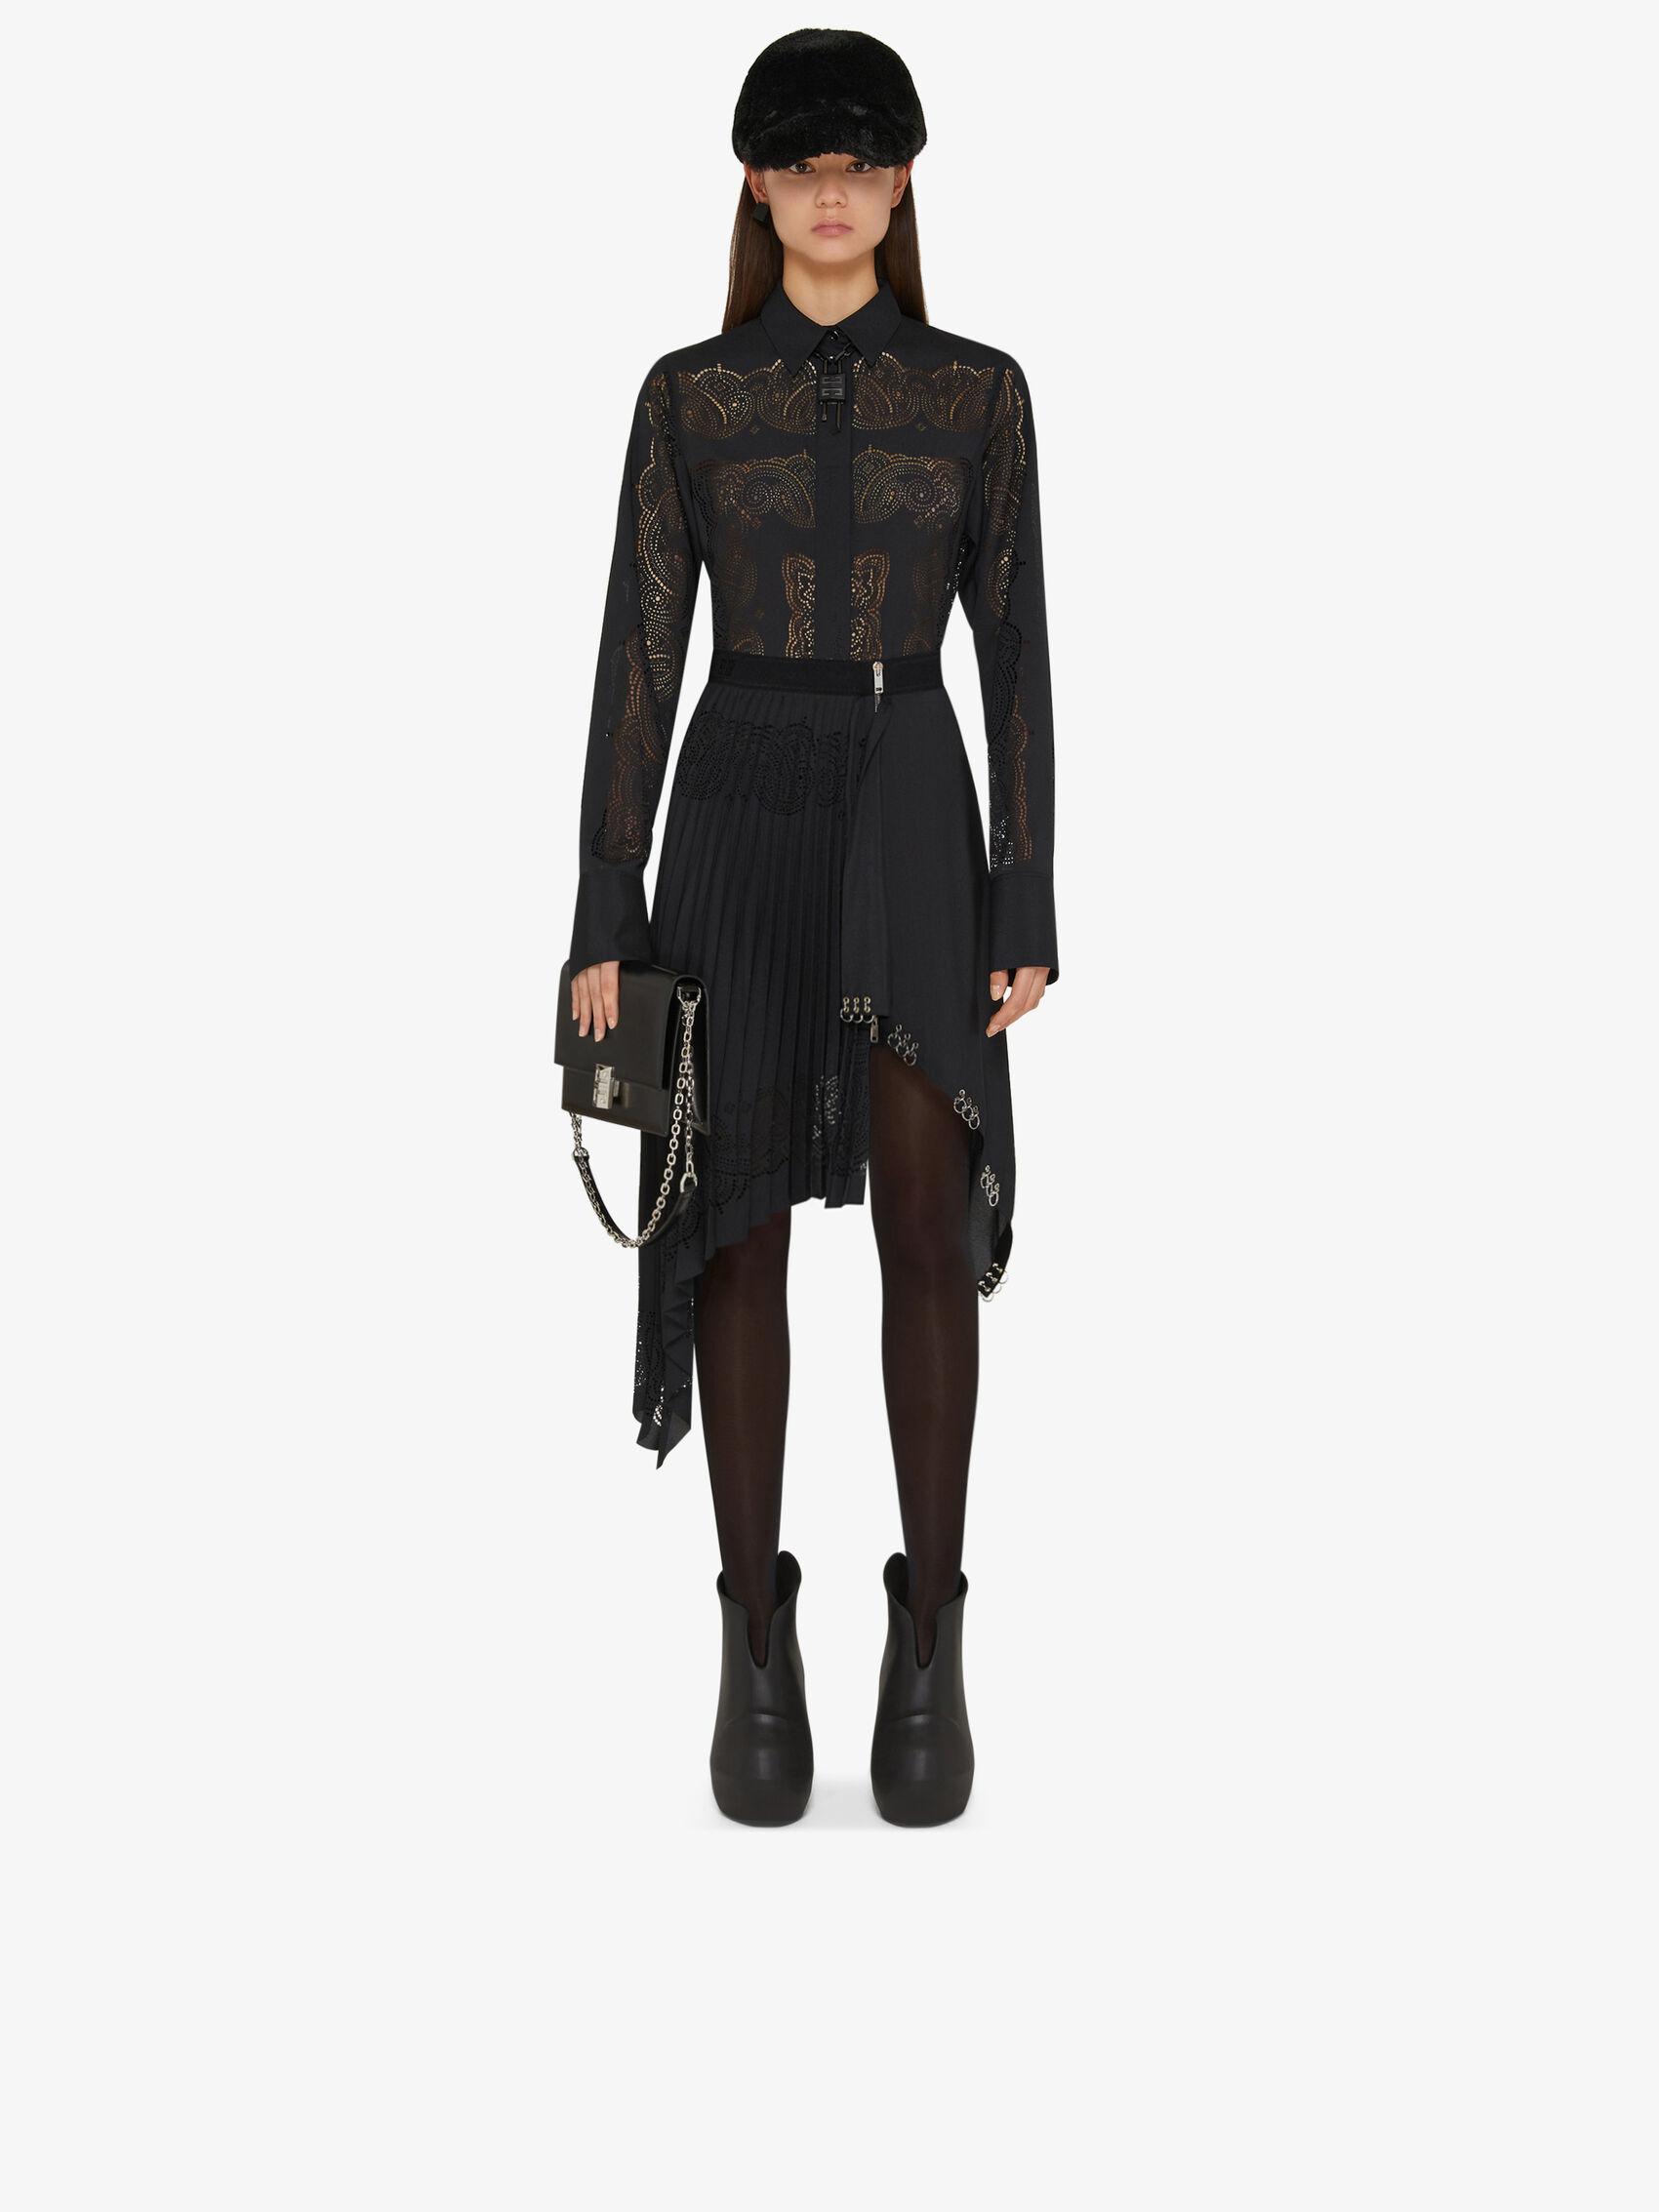 ASYMMETRICAL SKIRT WITH METALLIC DETAILS AND BANDANA PRINT by Givenchy, available on givenchy.com for $2590 Gigi Hadid Skirt Exact Product